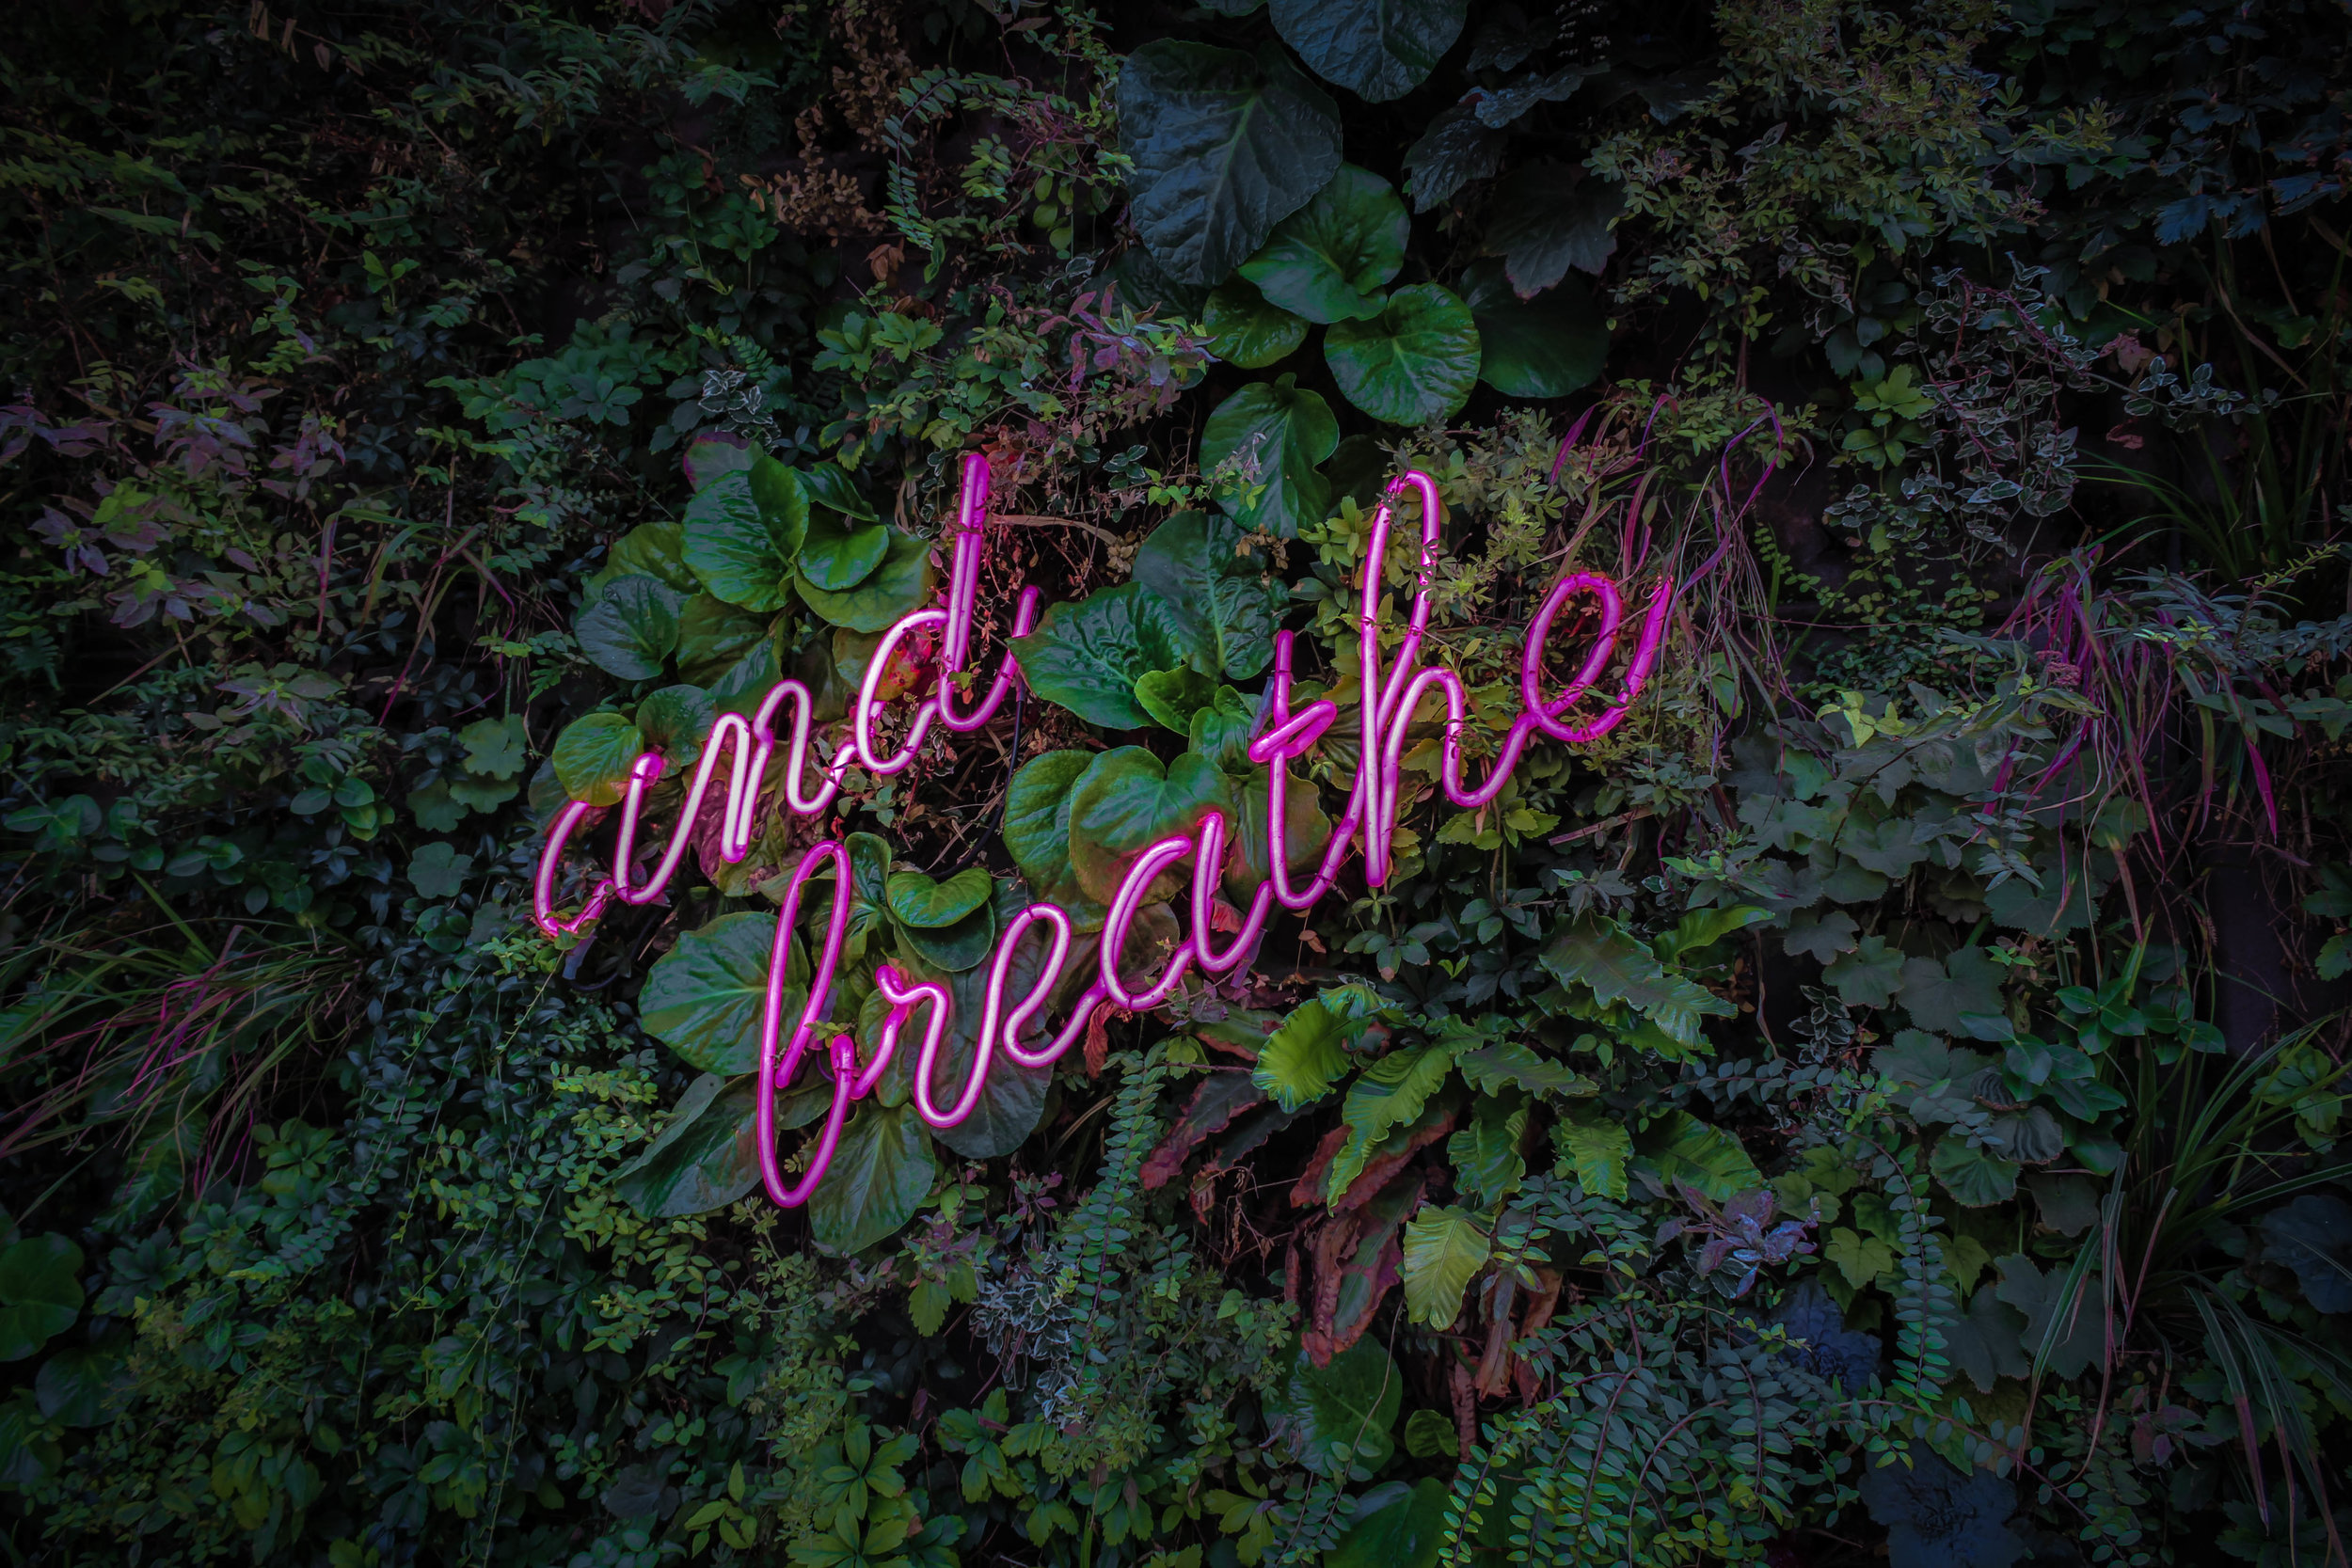 """Background of green plants with a neon sign saying """"and breathe"""""""